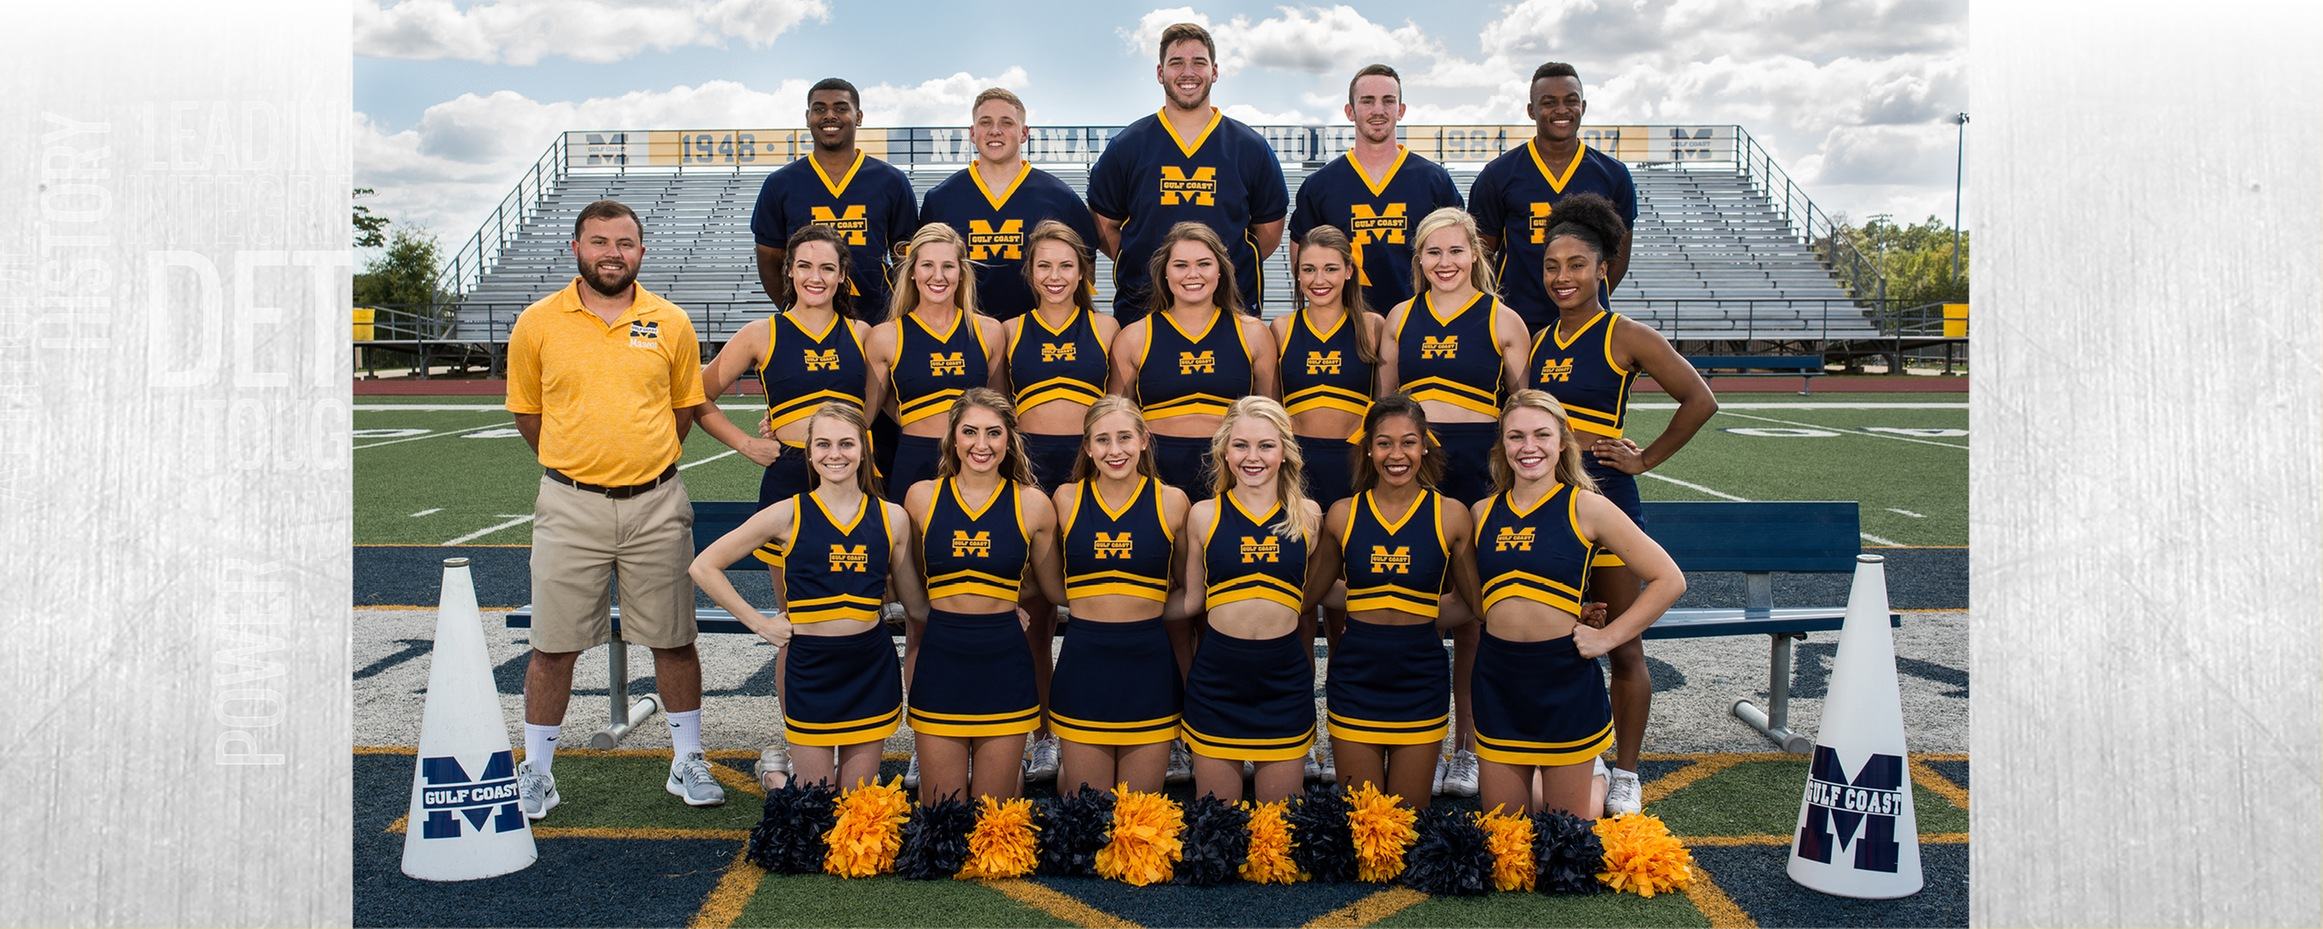 MGCCC Cheer heads to nationals for 2nd time